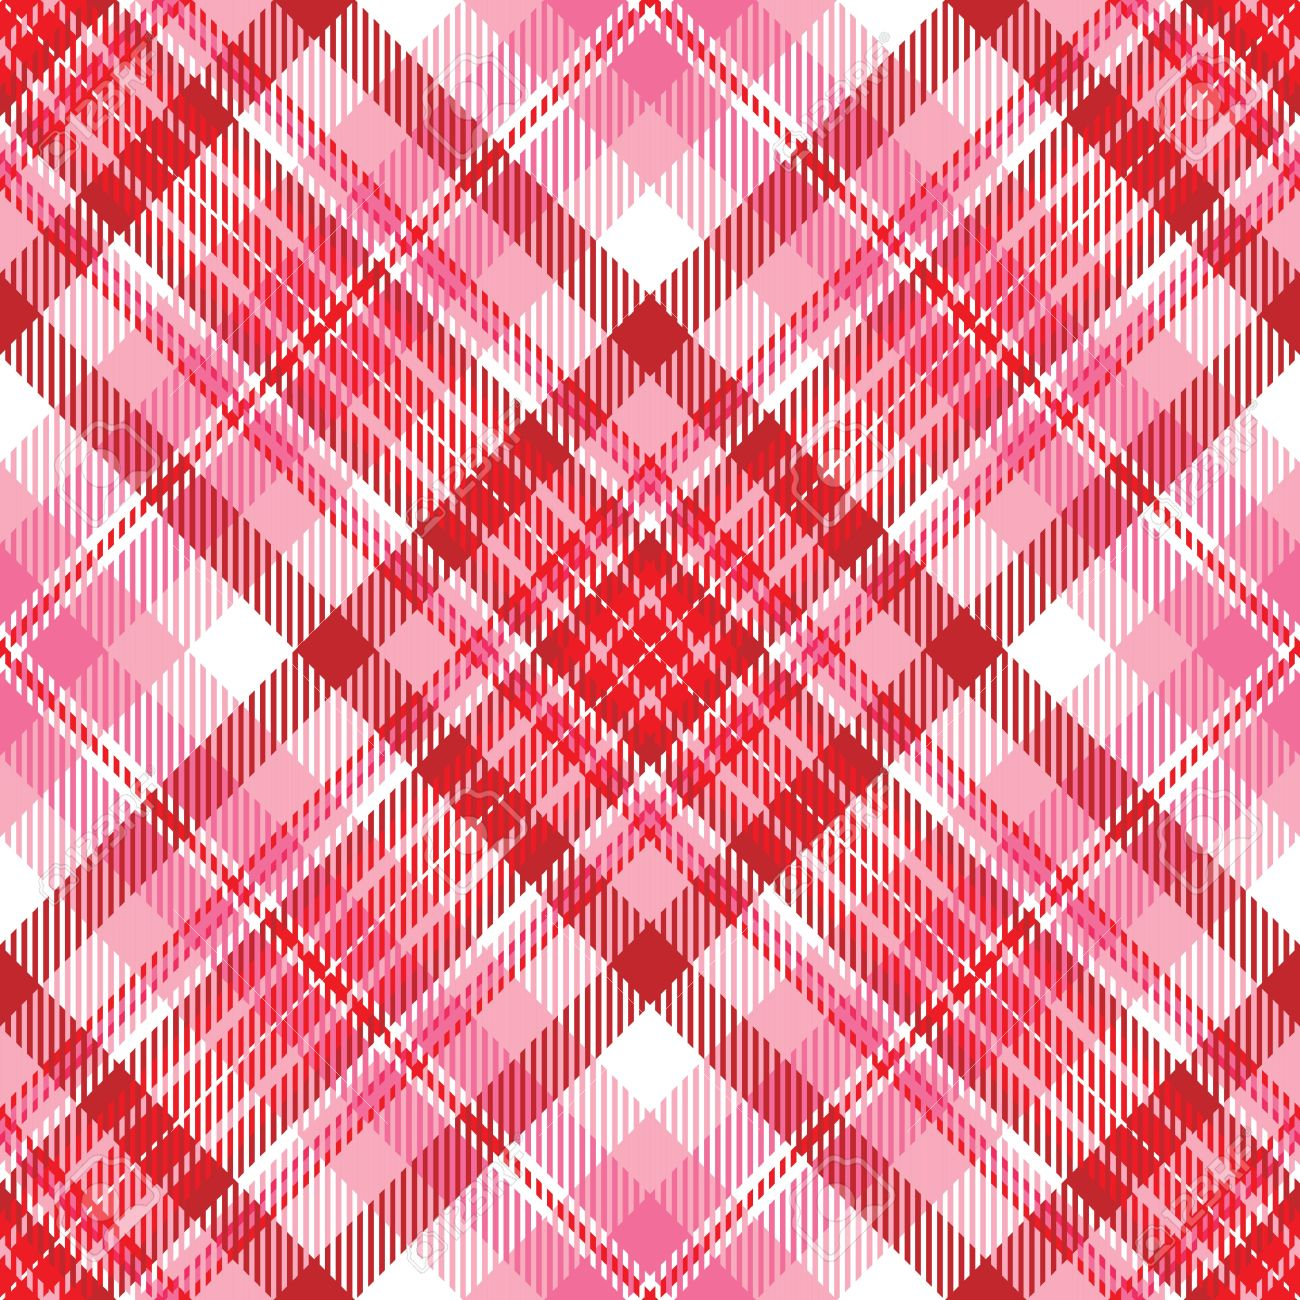 Plaid Background Pattern In Shades Of Red And Pink Stock Photo Picture And Royalty Free Image Image 4130404